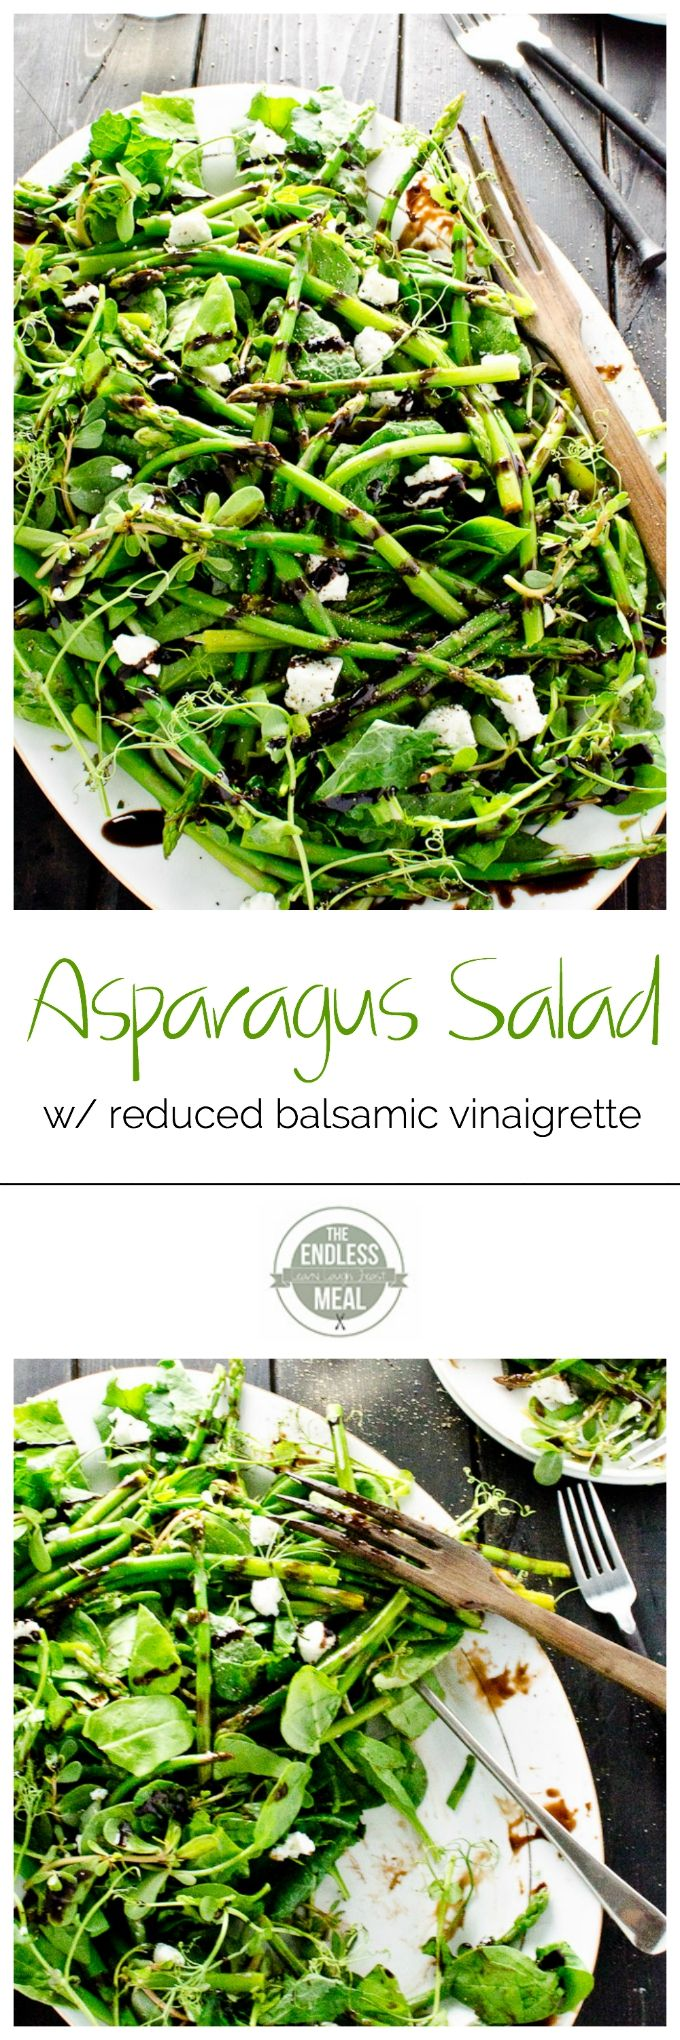 This simple asparagus salad makes an easy and delicious side dish that is naturally paleo and gluten free :: theendlessmeal.com